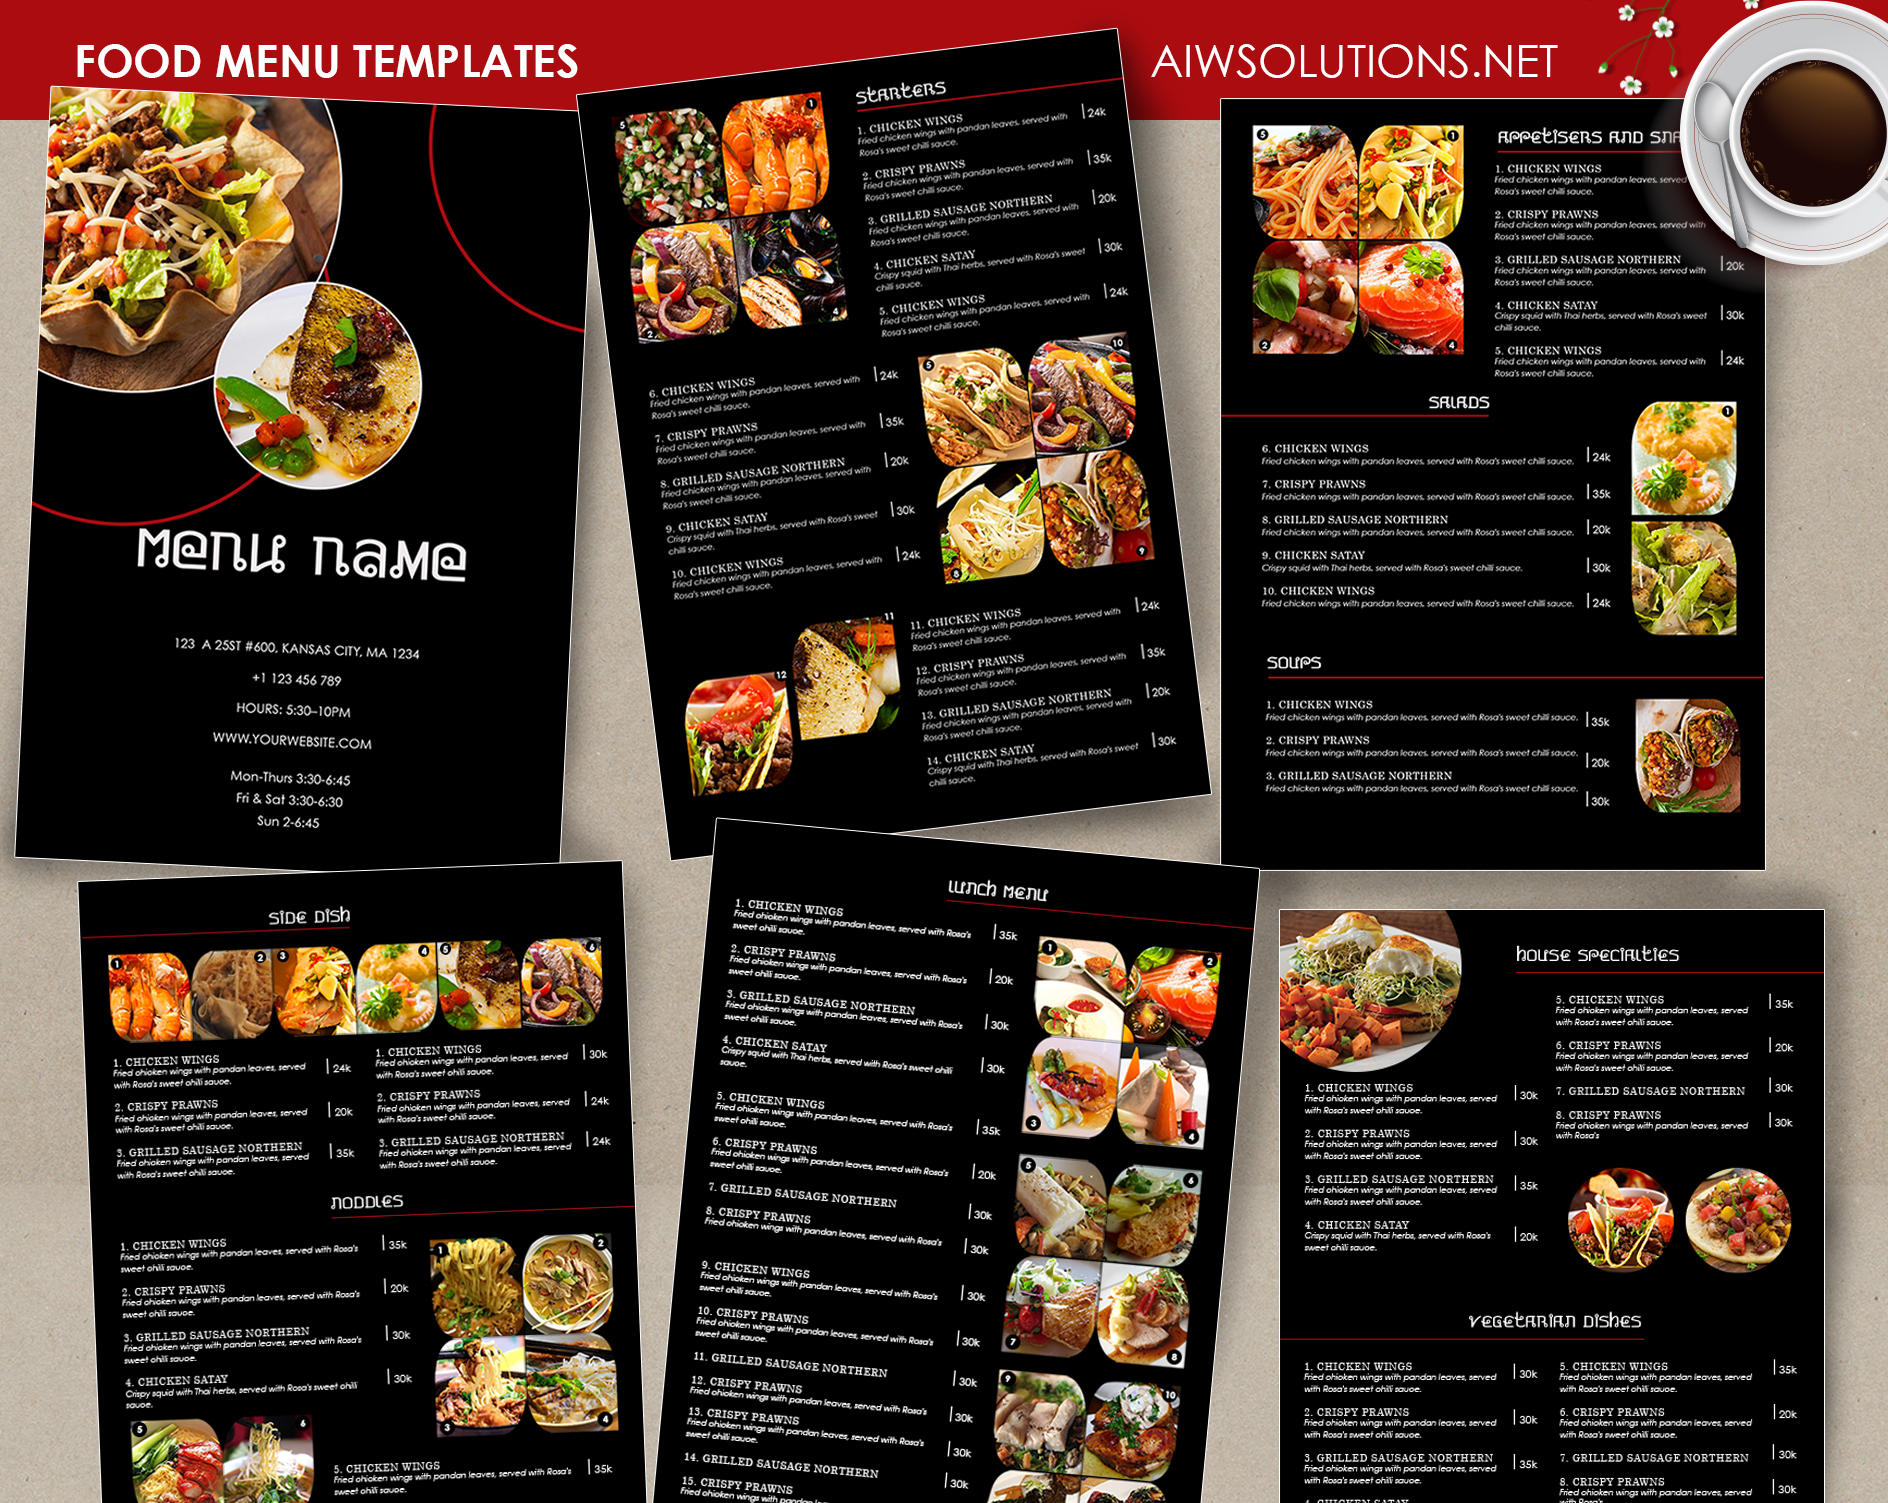 Design templates menu templates wedding menu food for Food bar menu